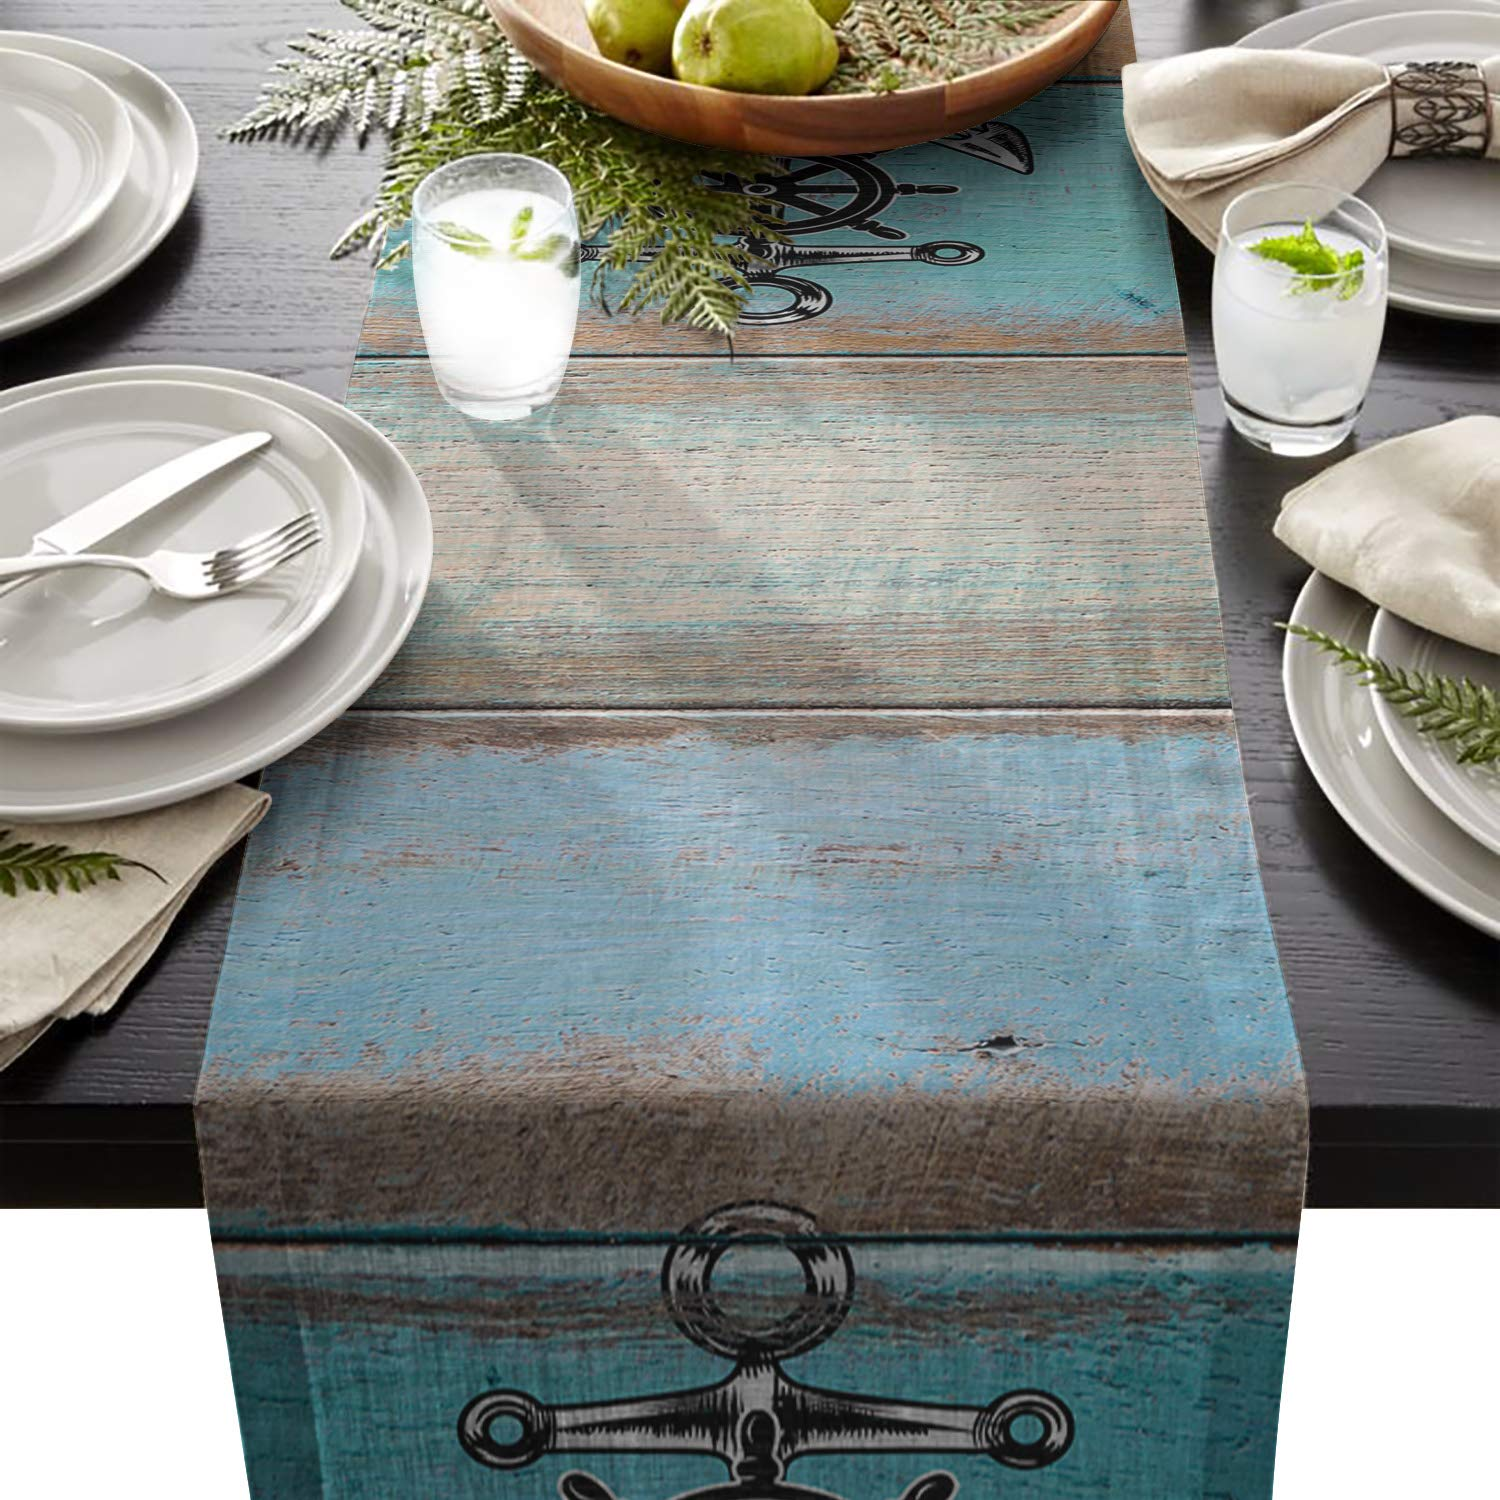 FAMILYDECOR Linen Burlap Table Runner Dresser Scarves, Nautical Anchor and Blue Barn Wood Kitchen Table Runners for Dinner Holiday Parties, Wedding, Events, Decor - 13 x 70 Inch